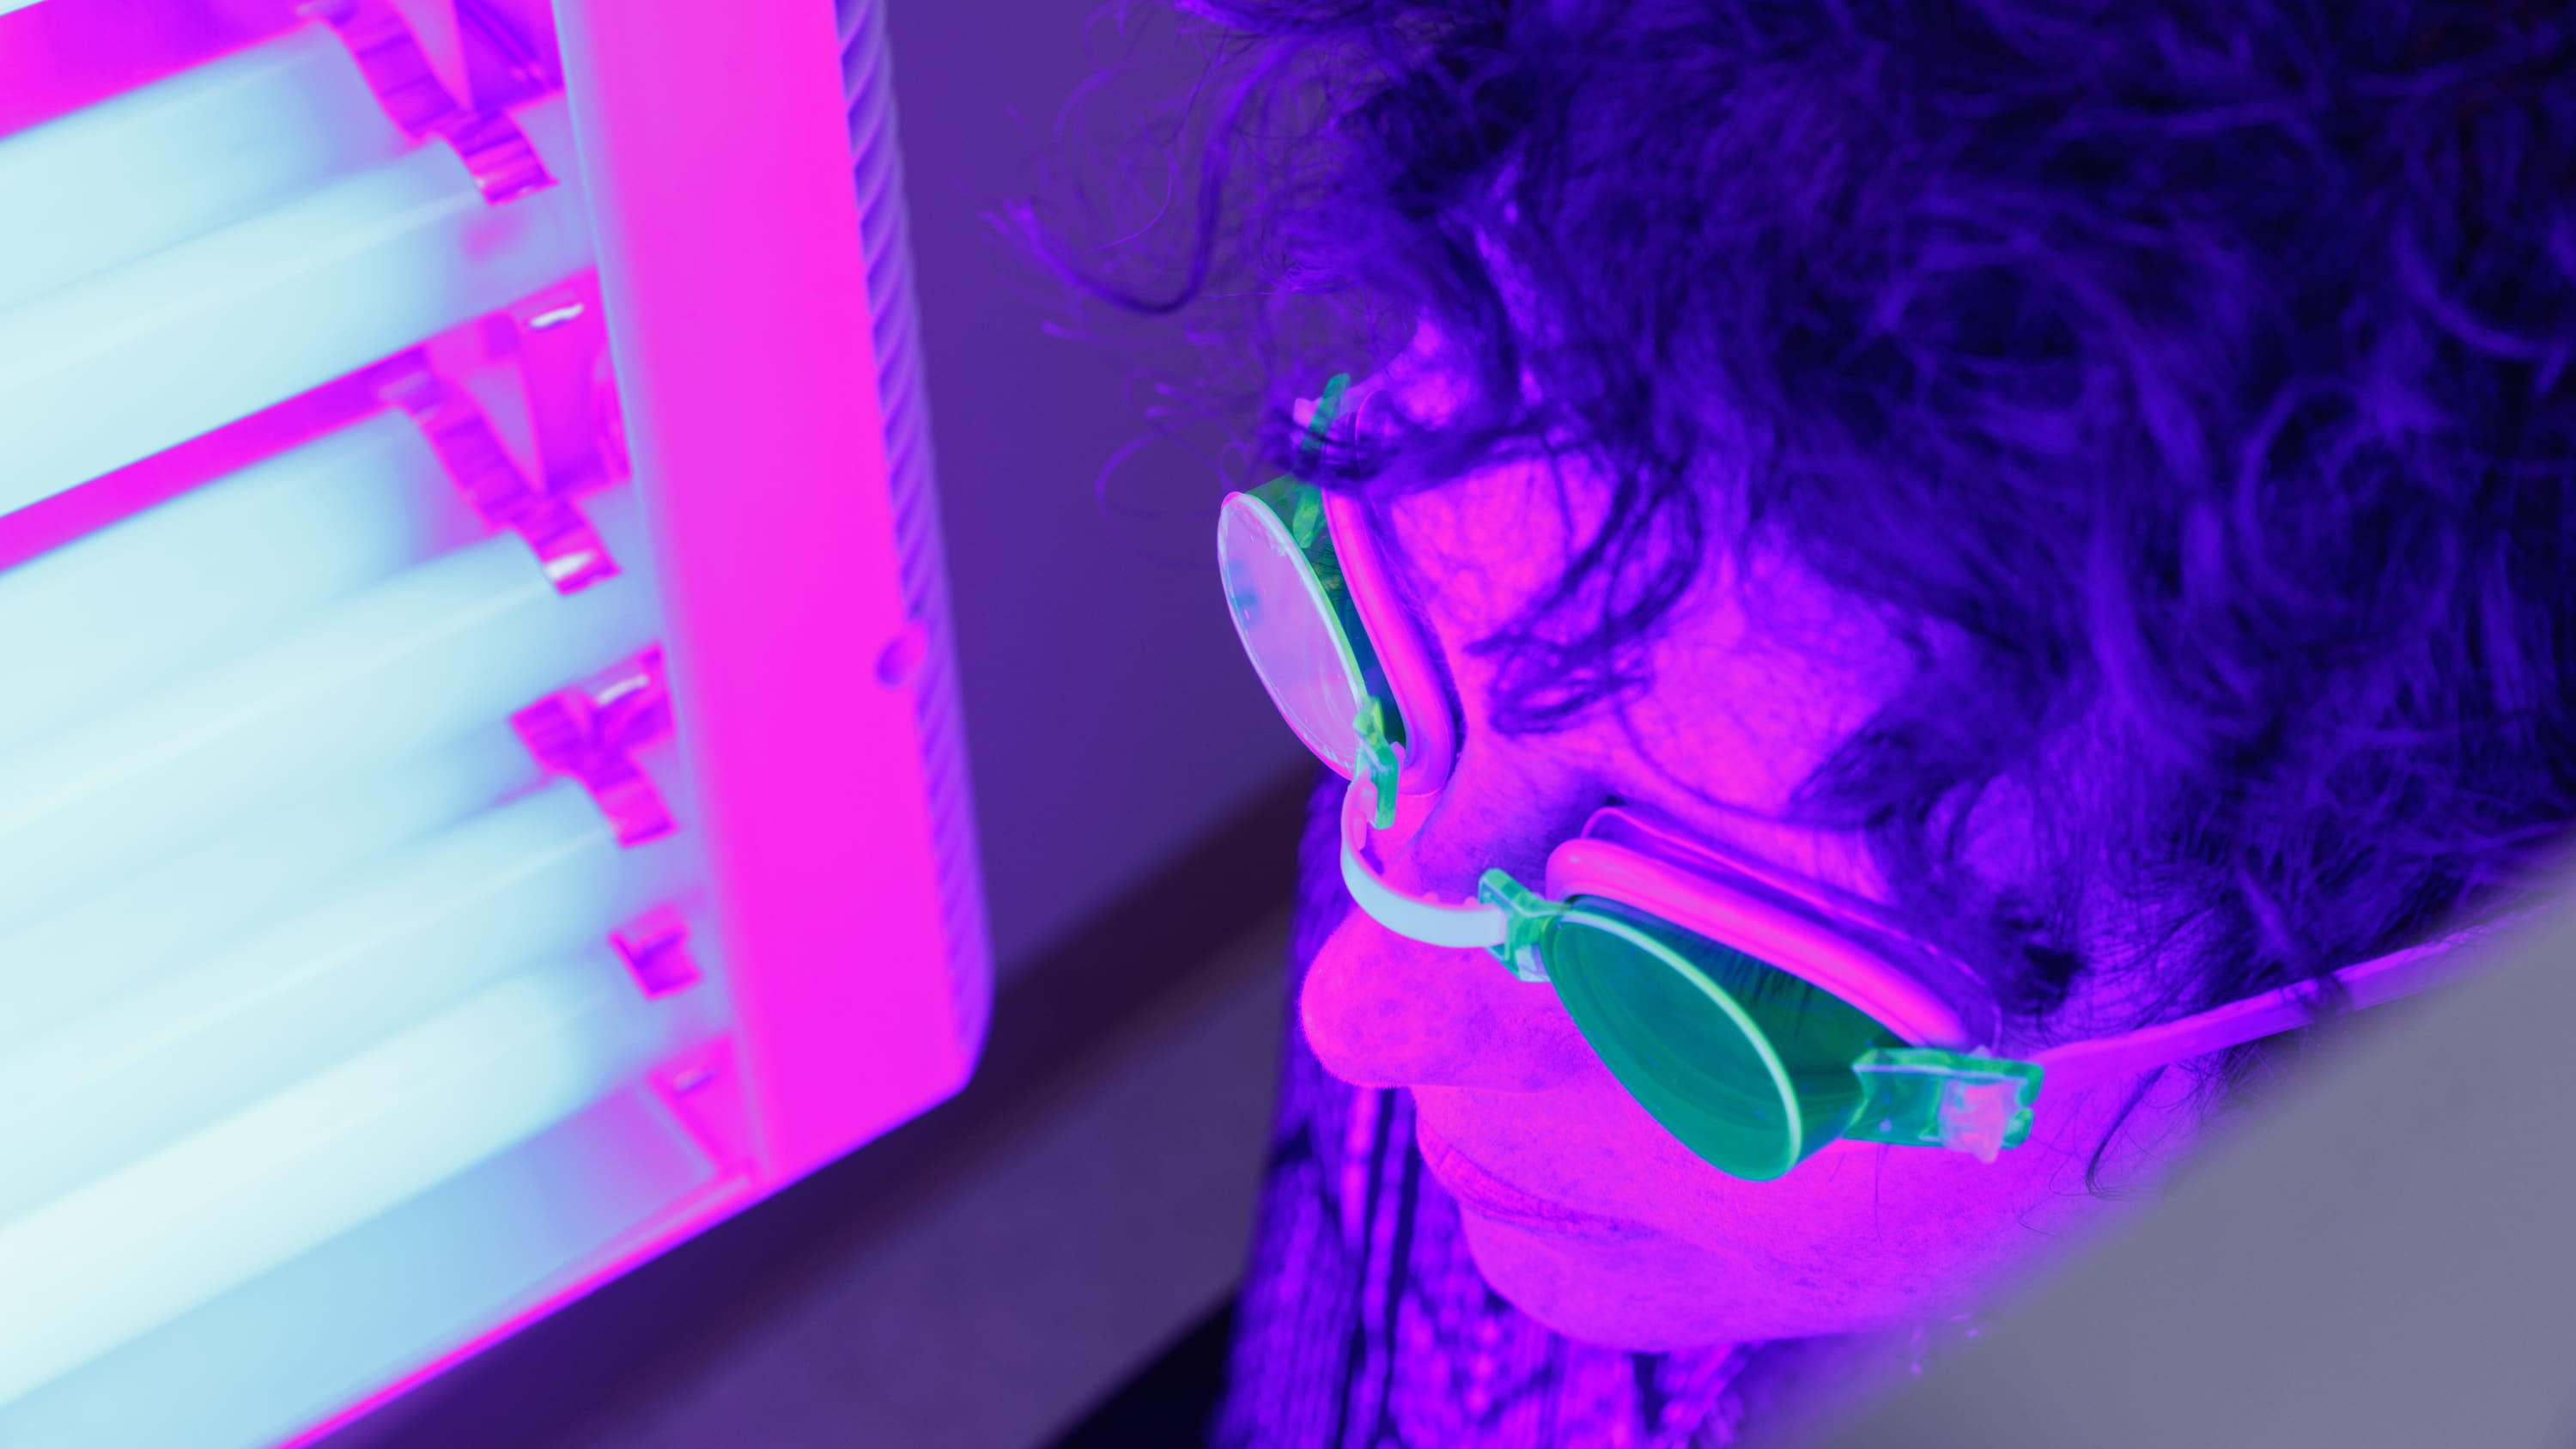 A patient received photodynamic light therapy.